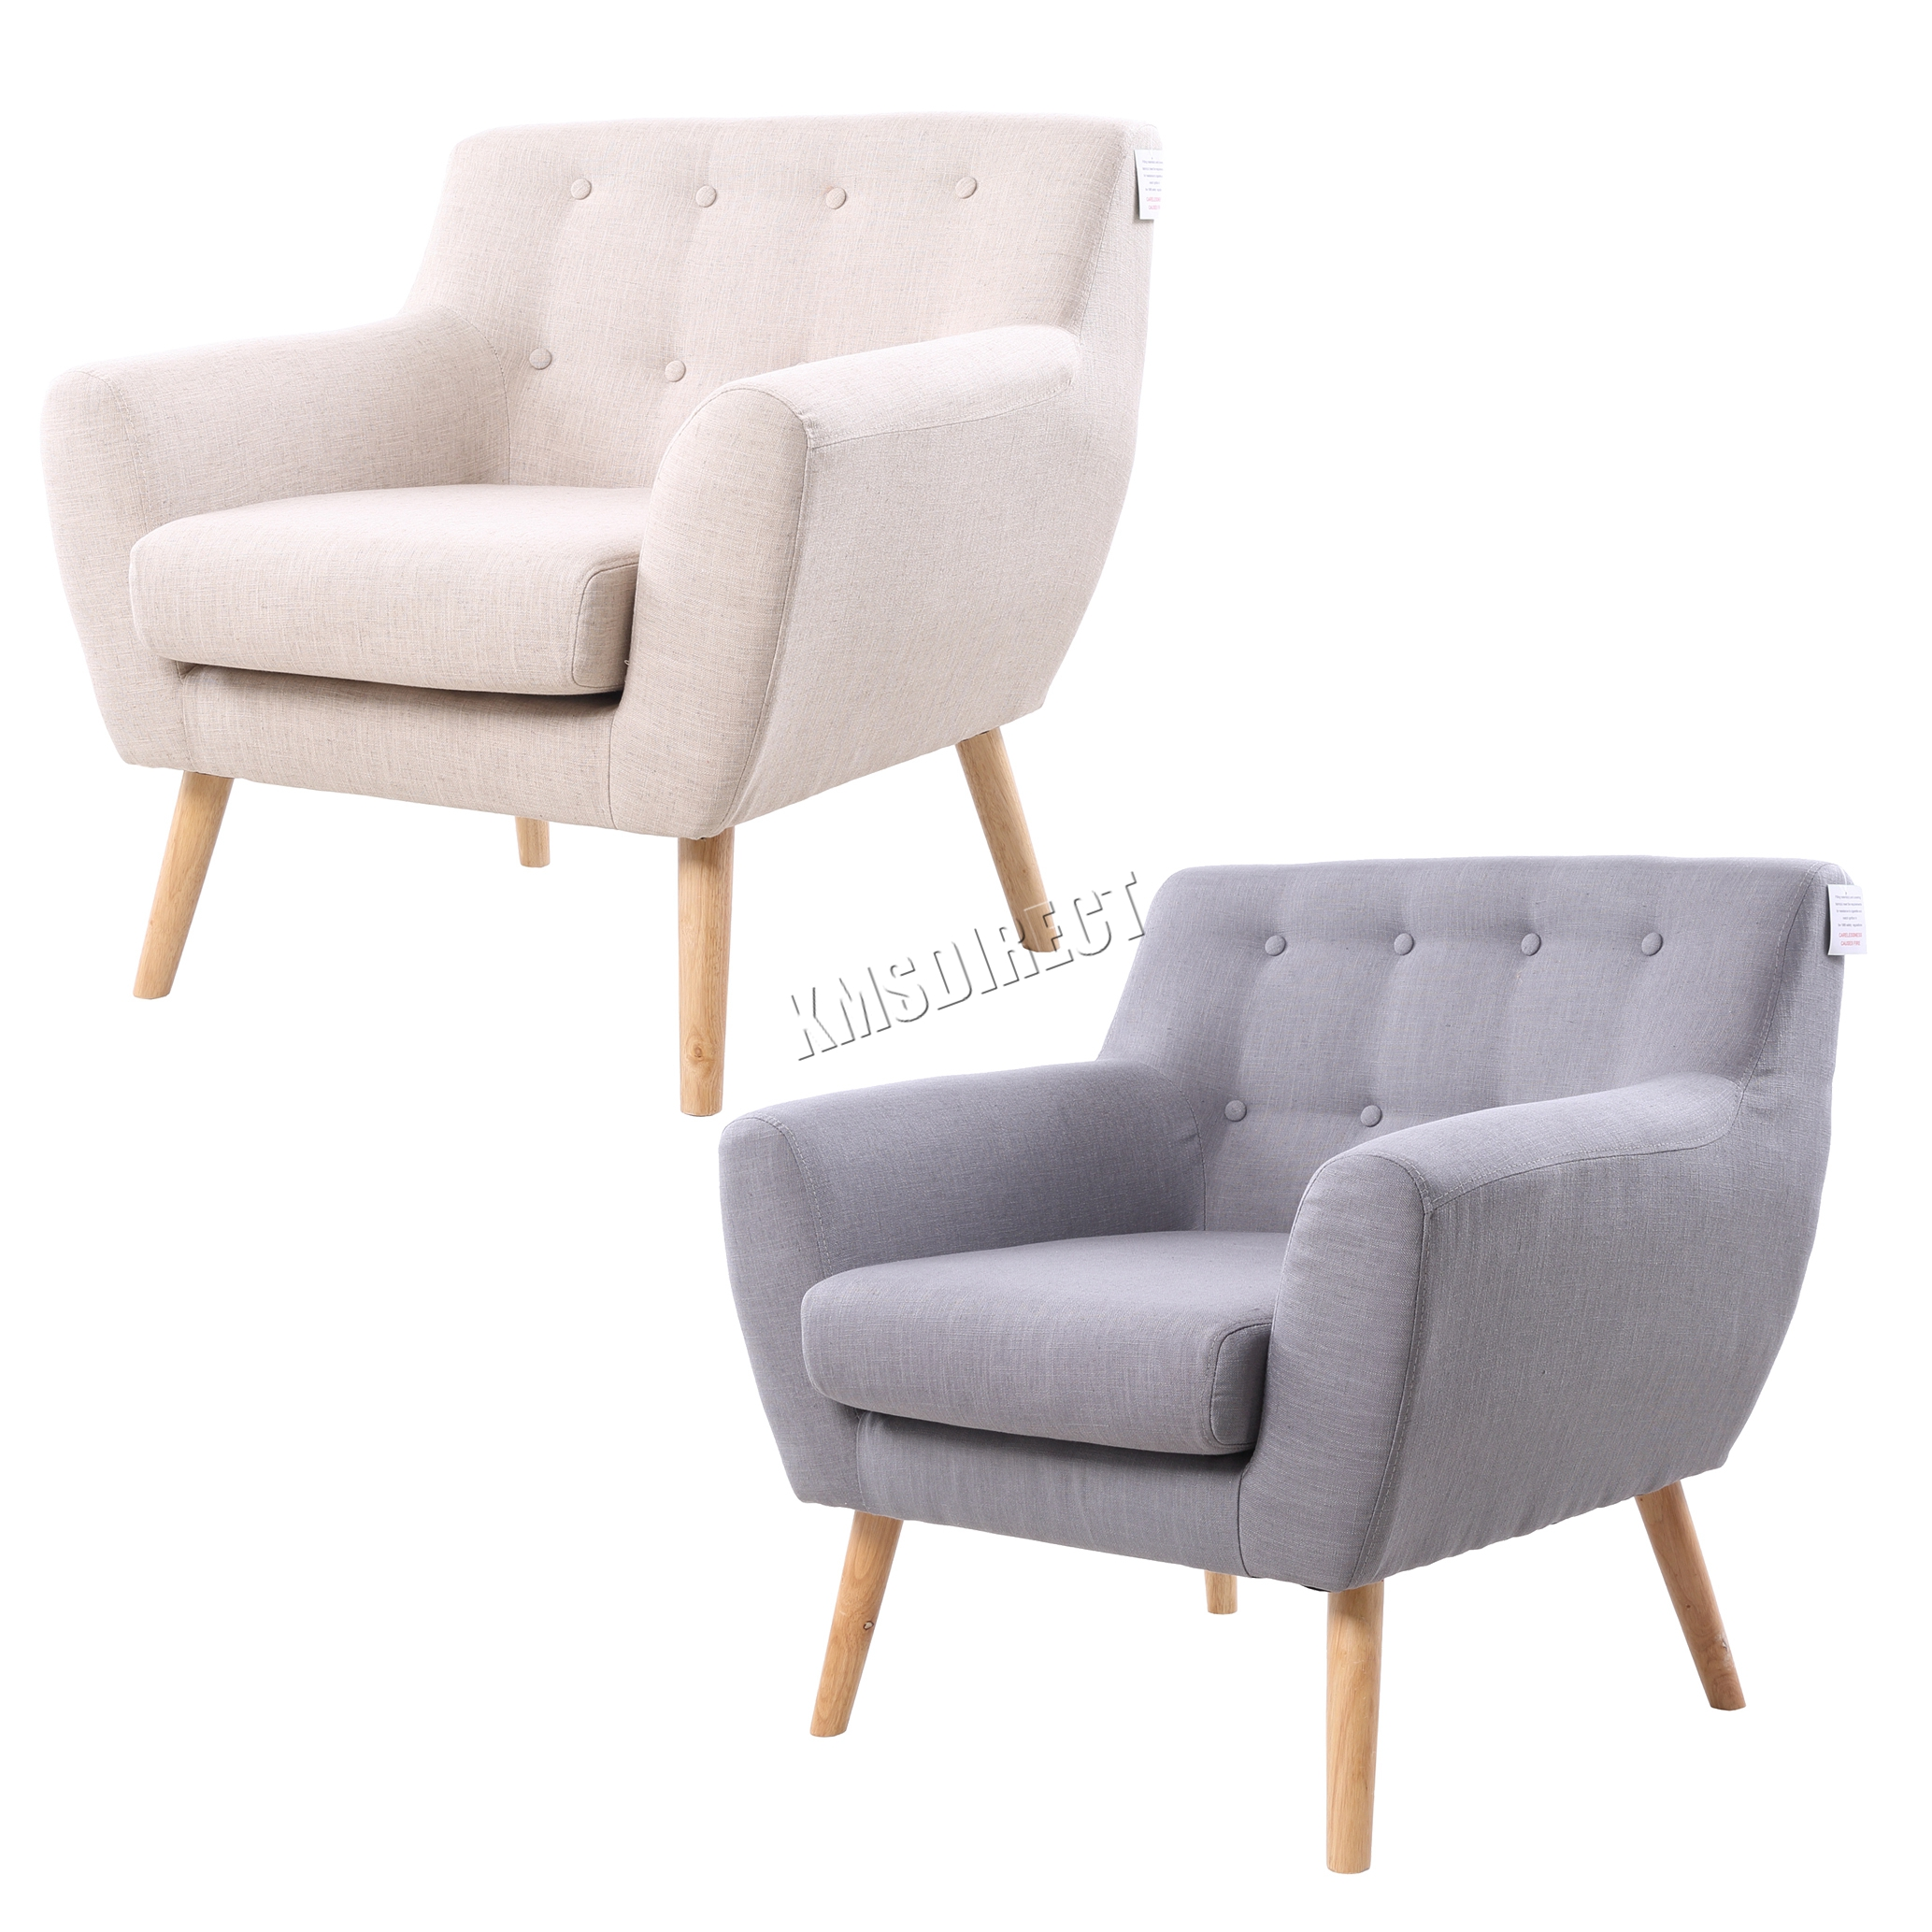 Single Living Room Chairs Living Room Chairs Ebay